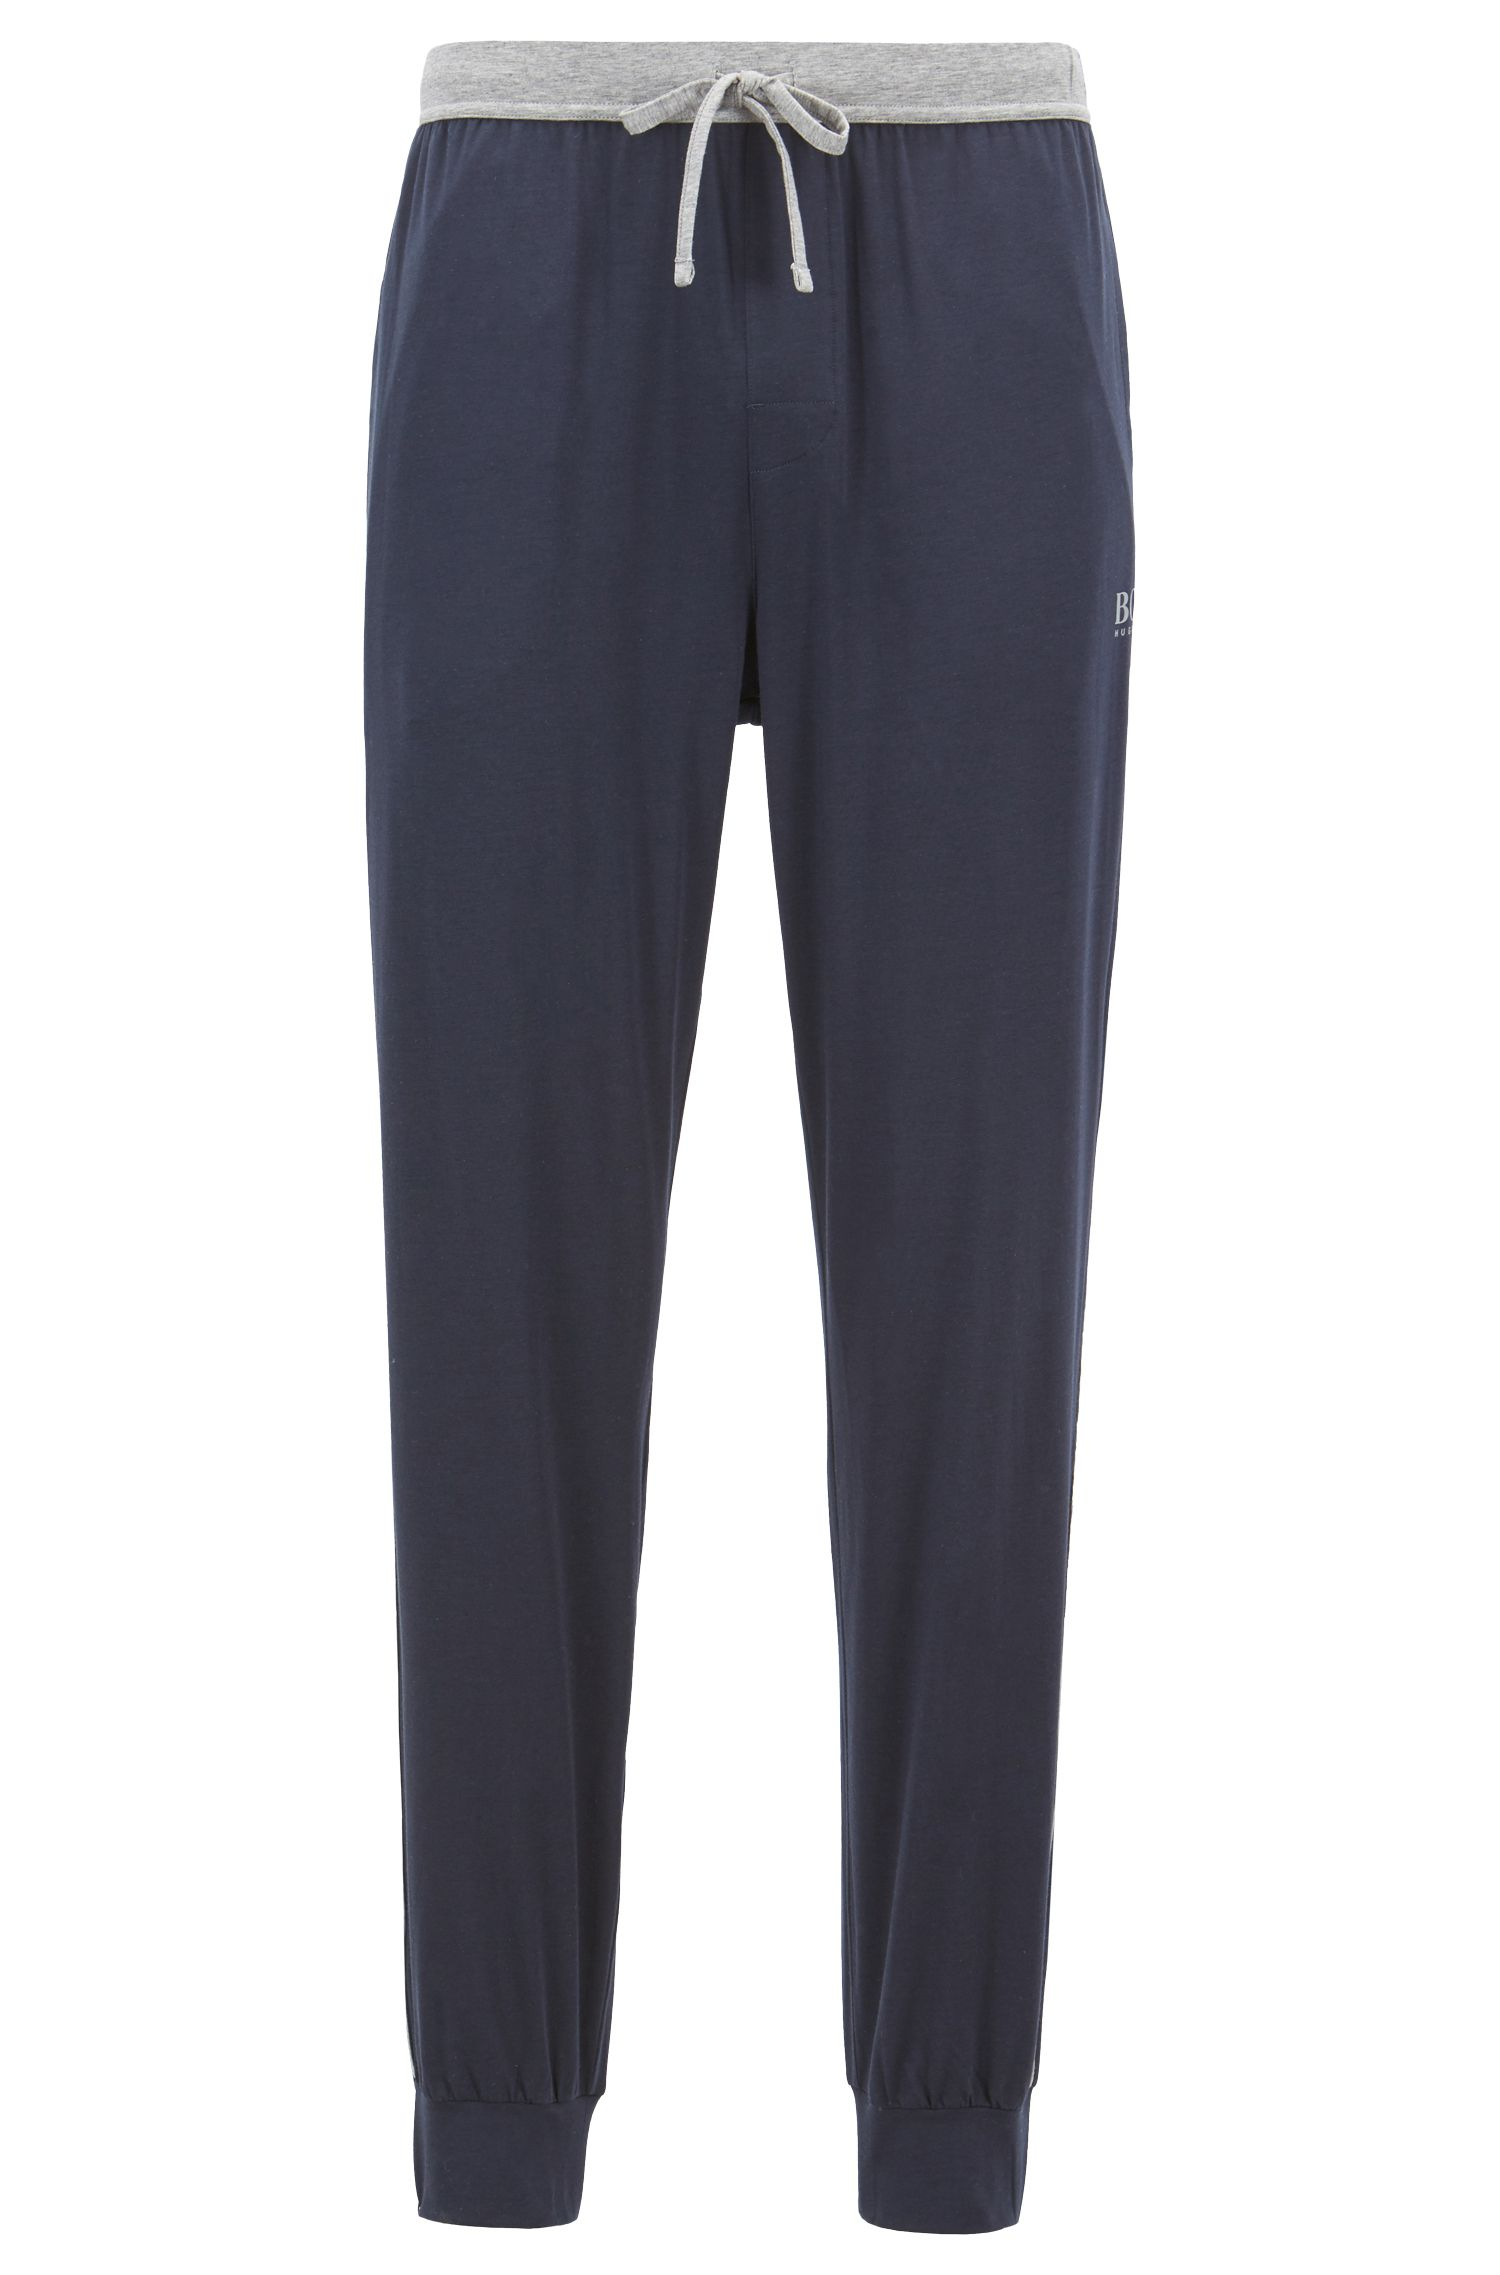 Pyjama bottoms in stretch fabric with cuffed hems